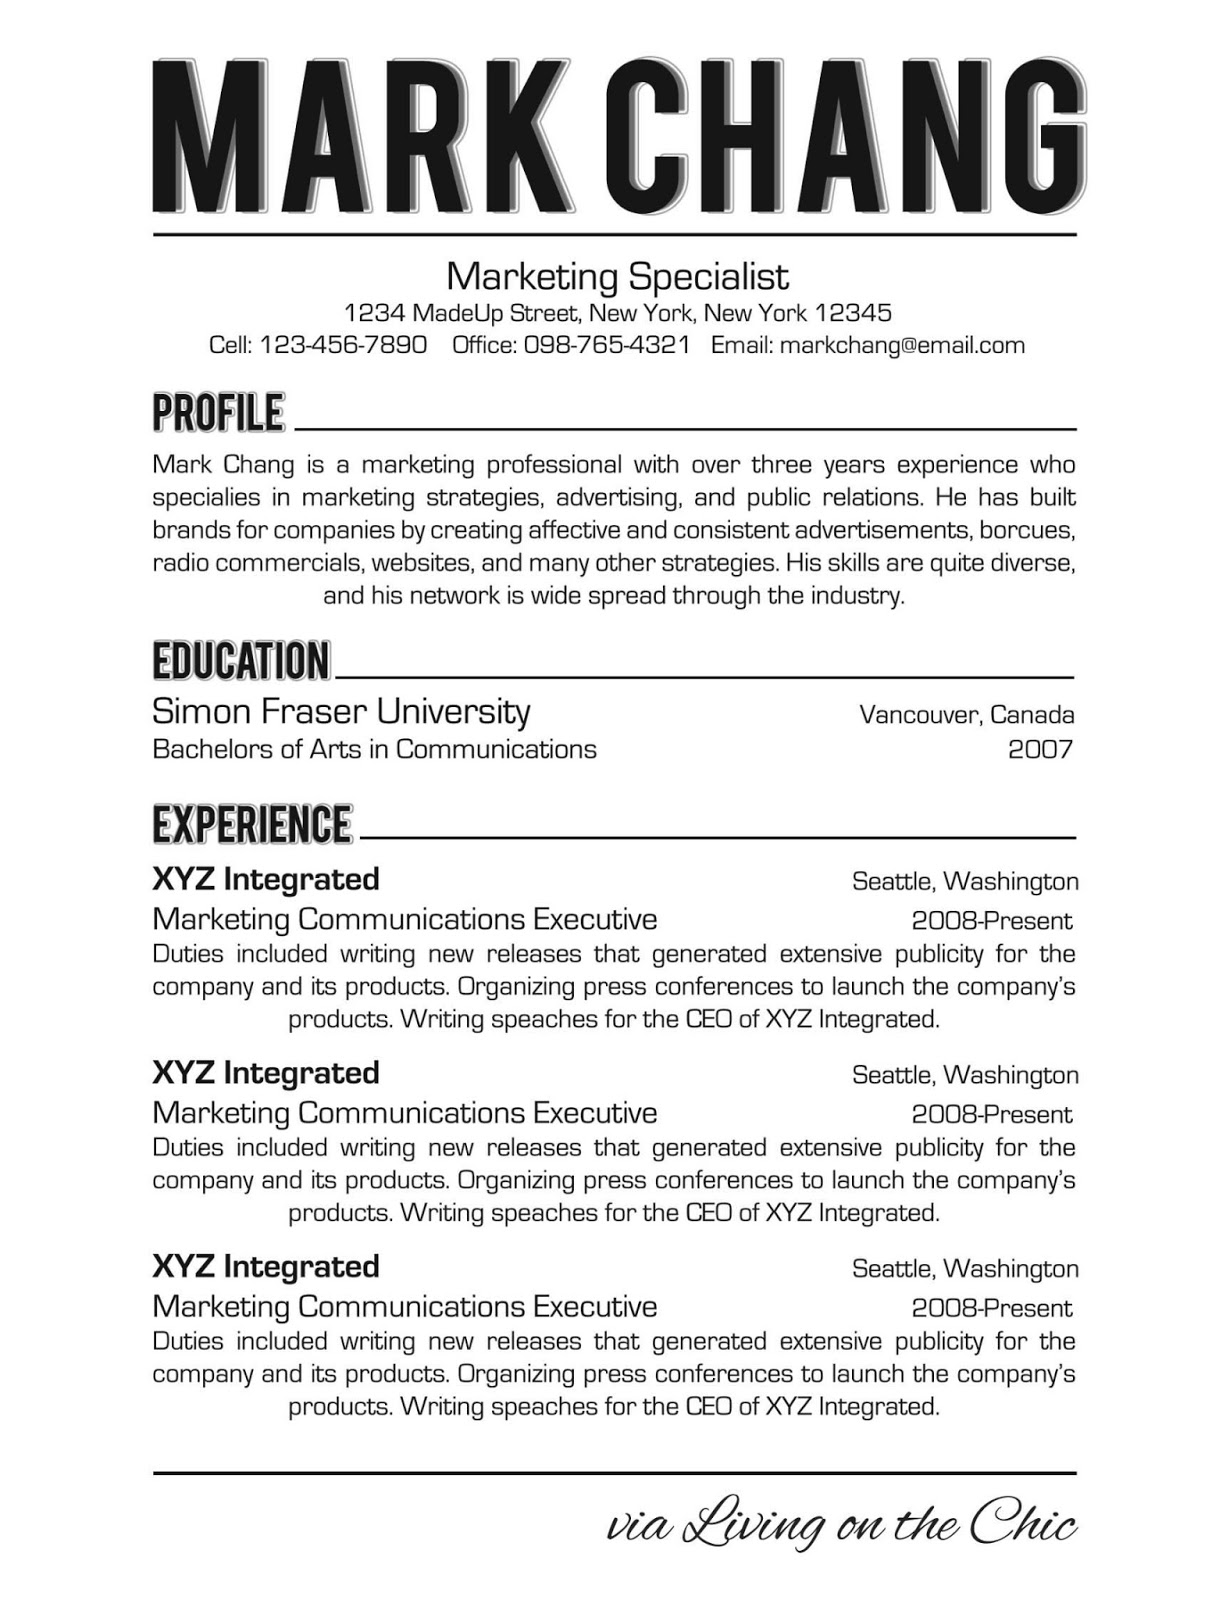 Best Fonts Resume How To Buy A Speech Outline Online Drum Major Essay